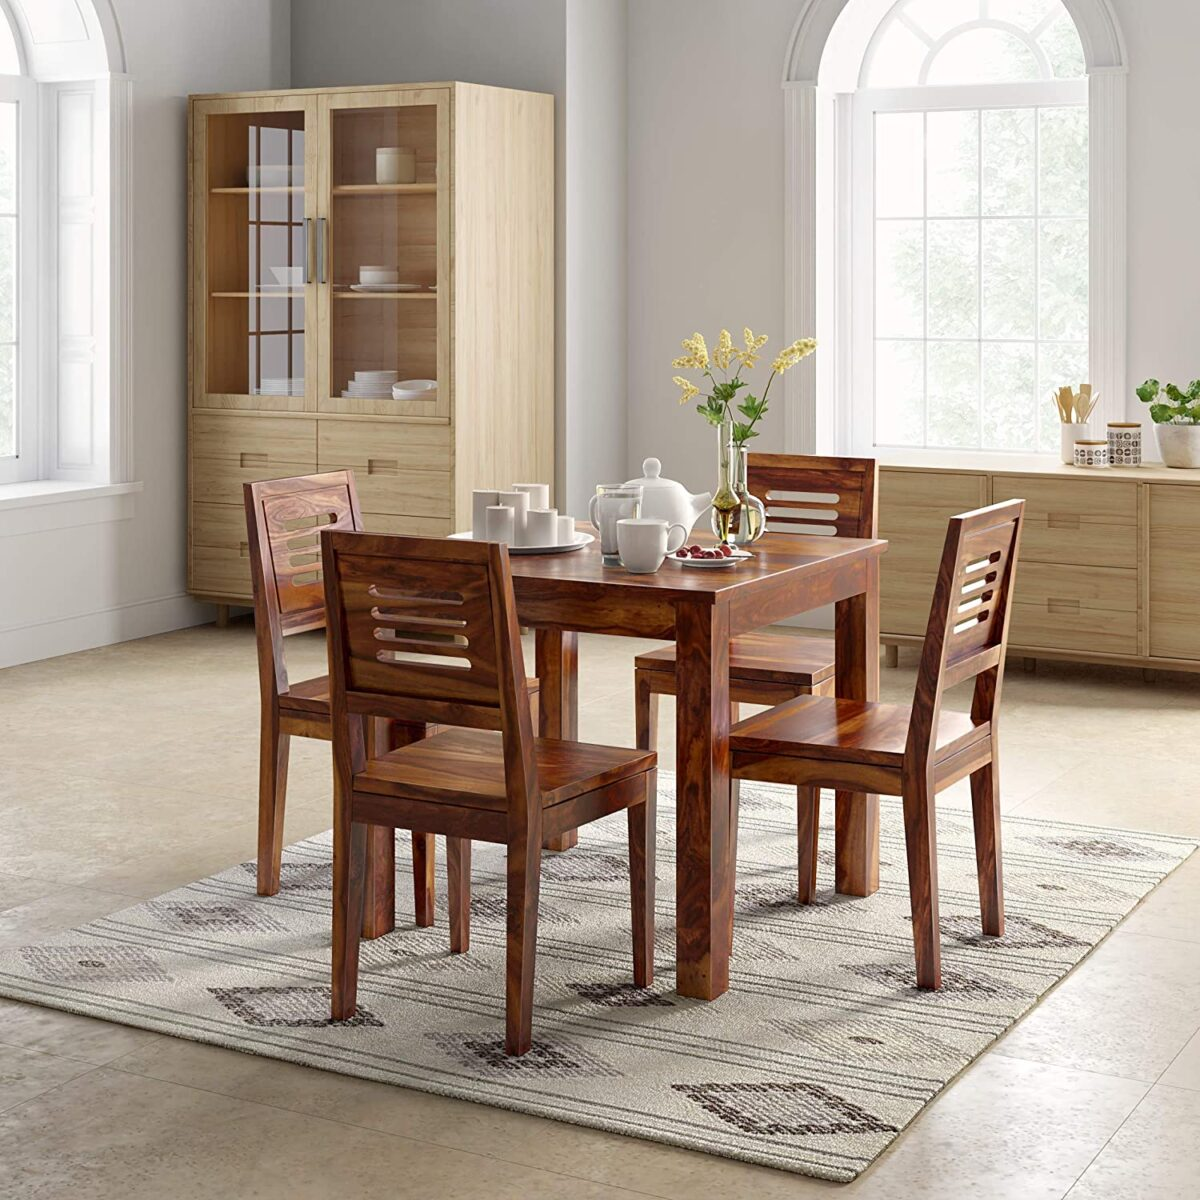 Sheesham Wood Dining Table 4 Seater Dining Table Set with 4 Chairs Dining Room Furniture Wood Dining Table 4 Seater